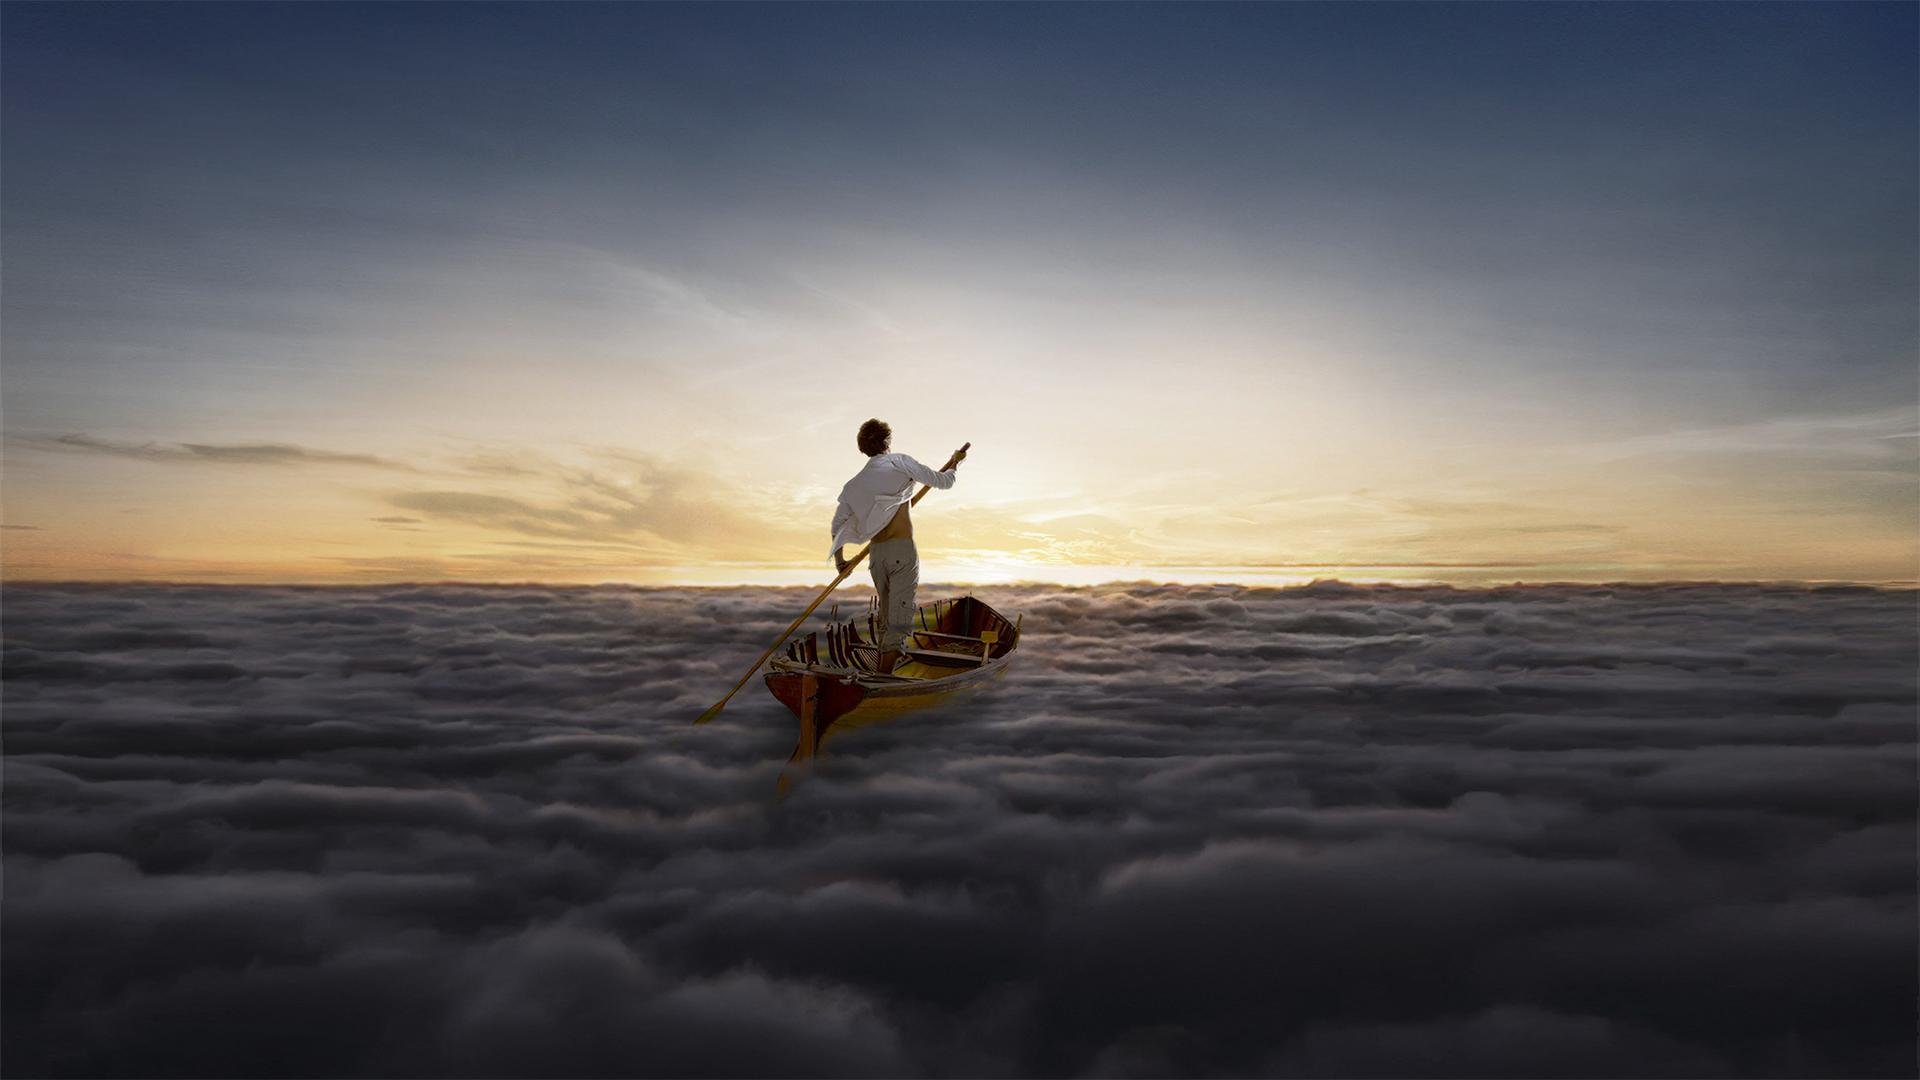 Daily hd wallpaper [1920x1080] The Endless River   Pink Floyd 1920x1080